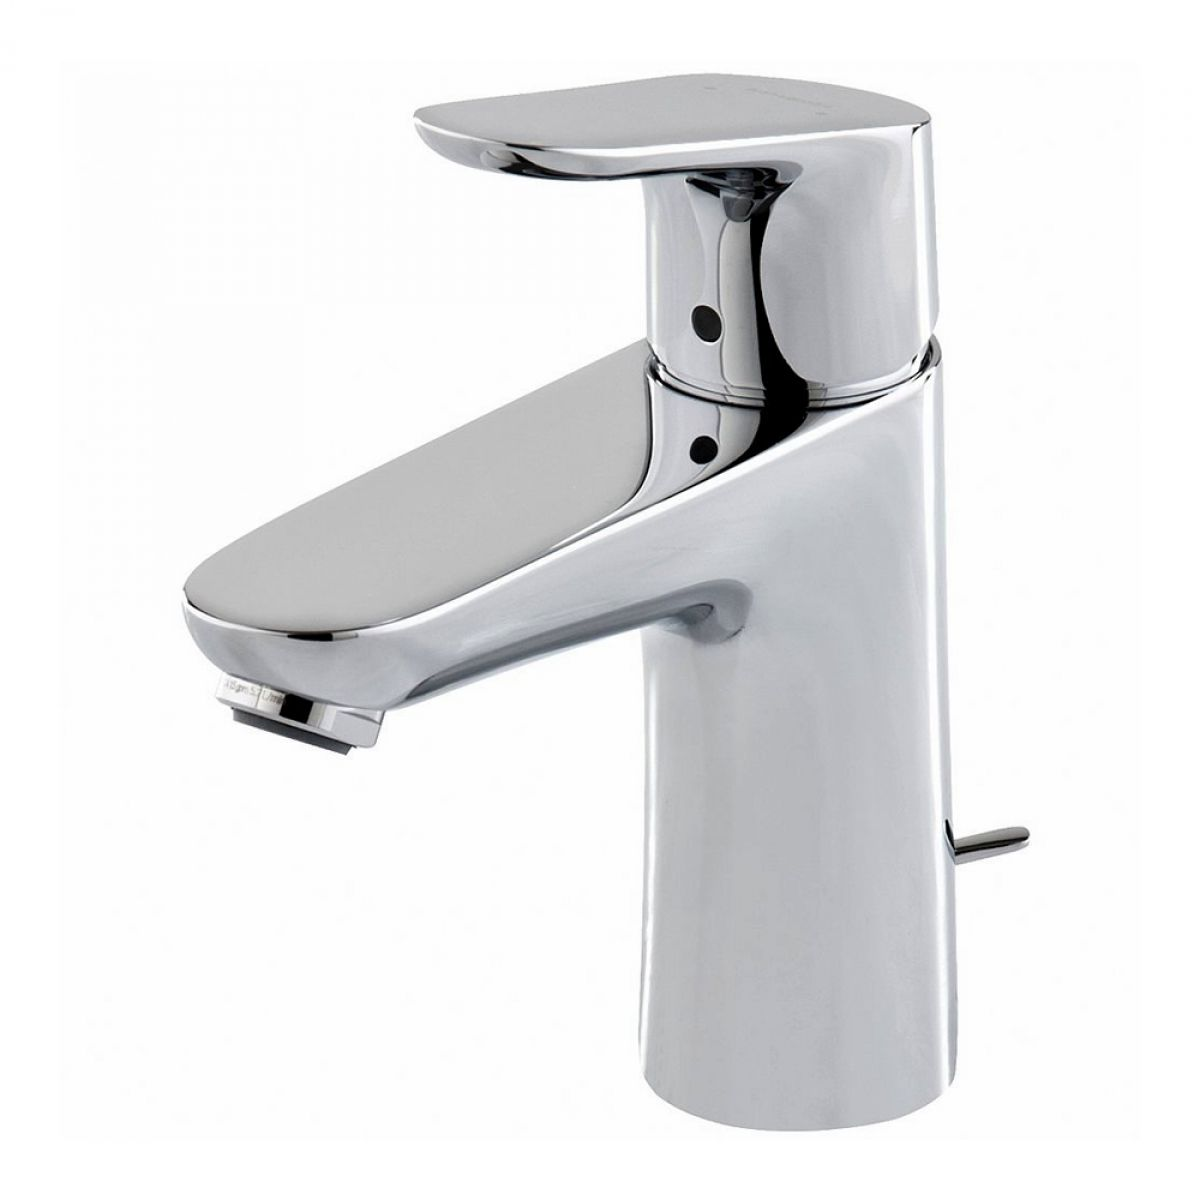 Hansgrohe focus 100 basin mixer tap uk bathrooms for Unterschied grohe hansgrohe